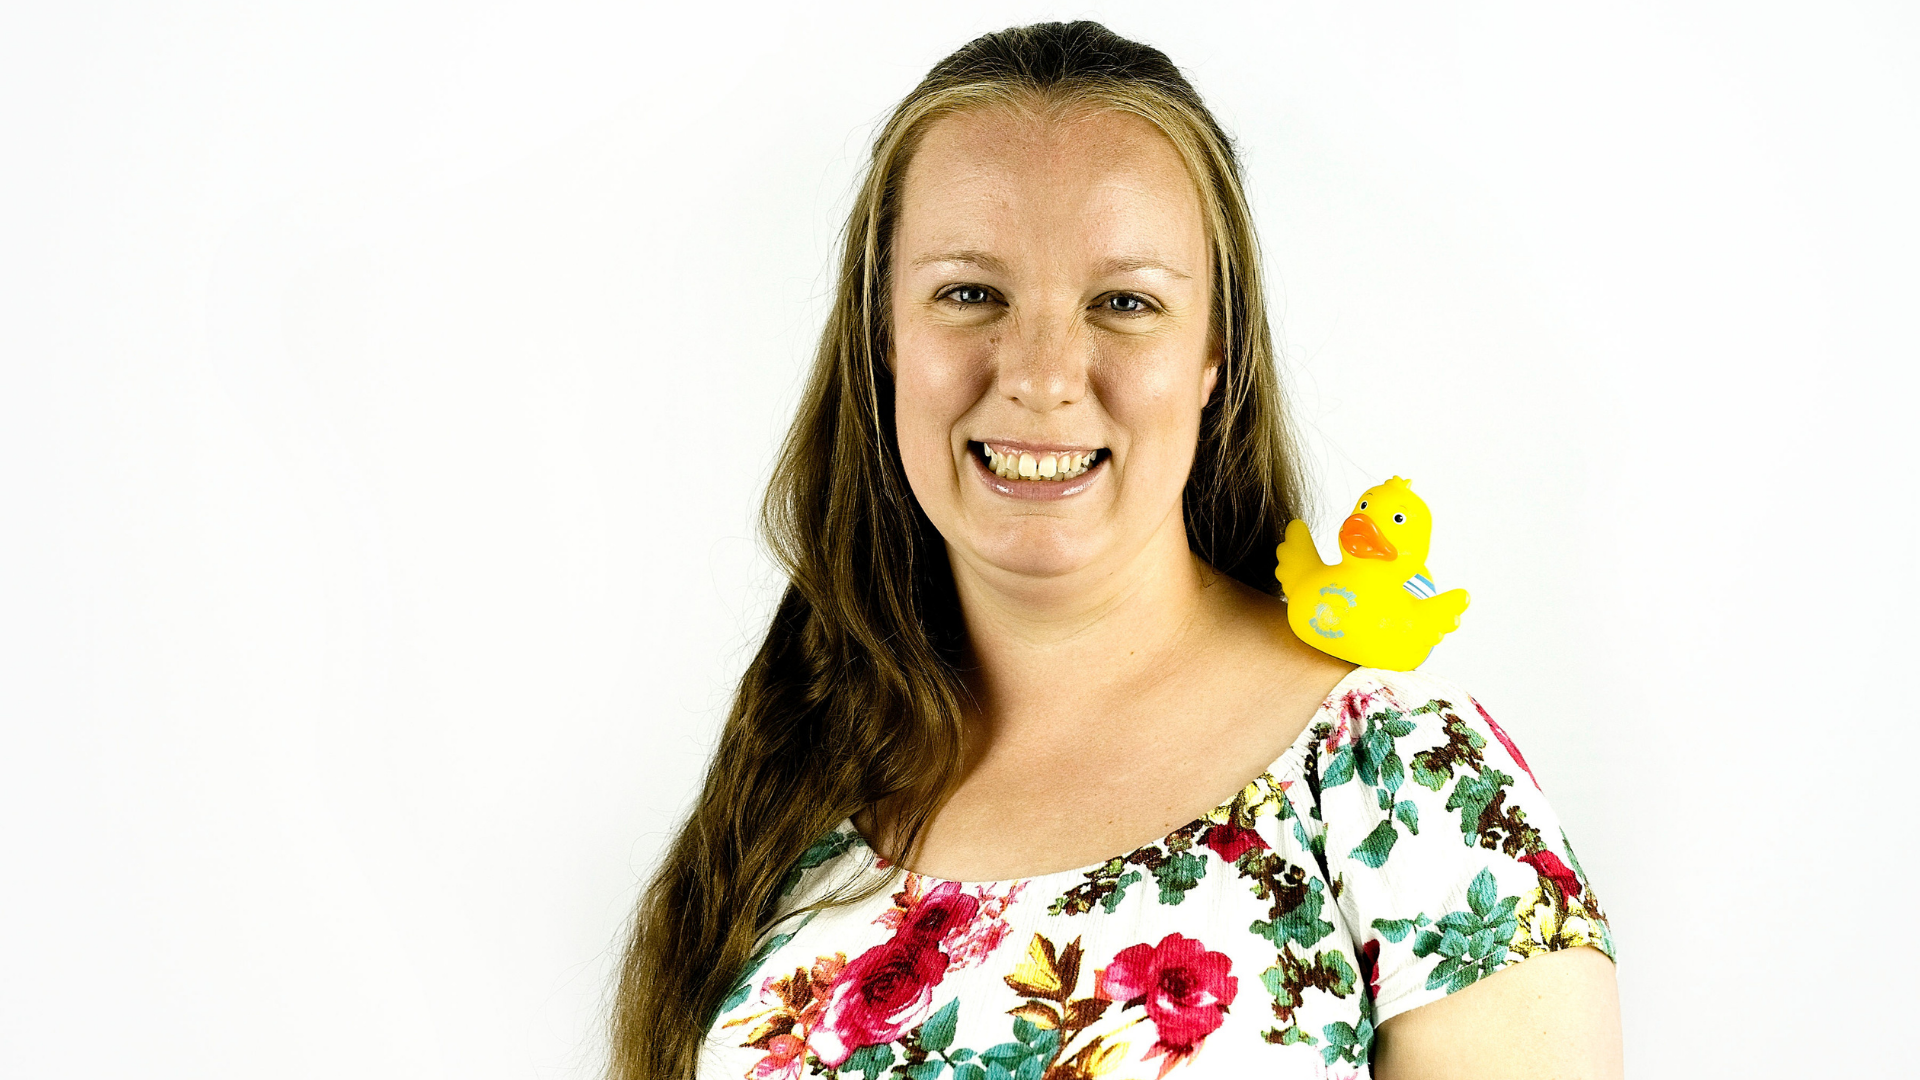 Puddle Ducks celebrate success as Victoria Rowley named EWIF 'Franchisee of the Year'